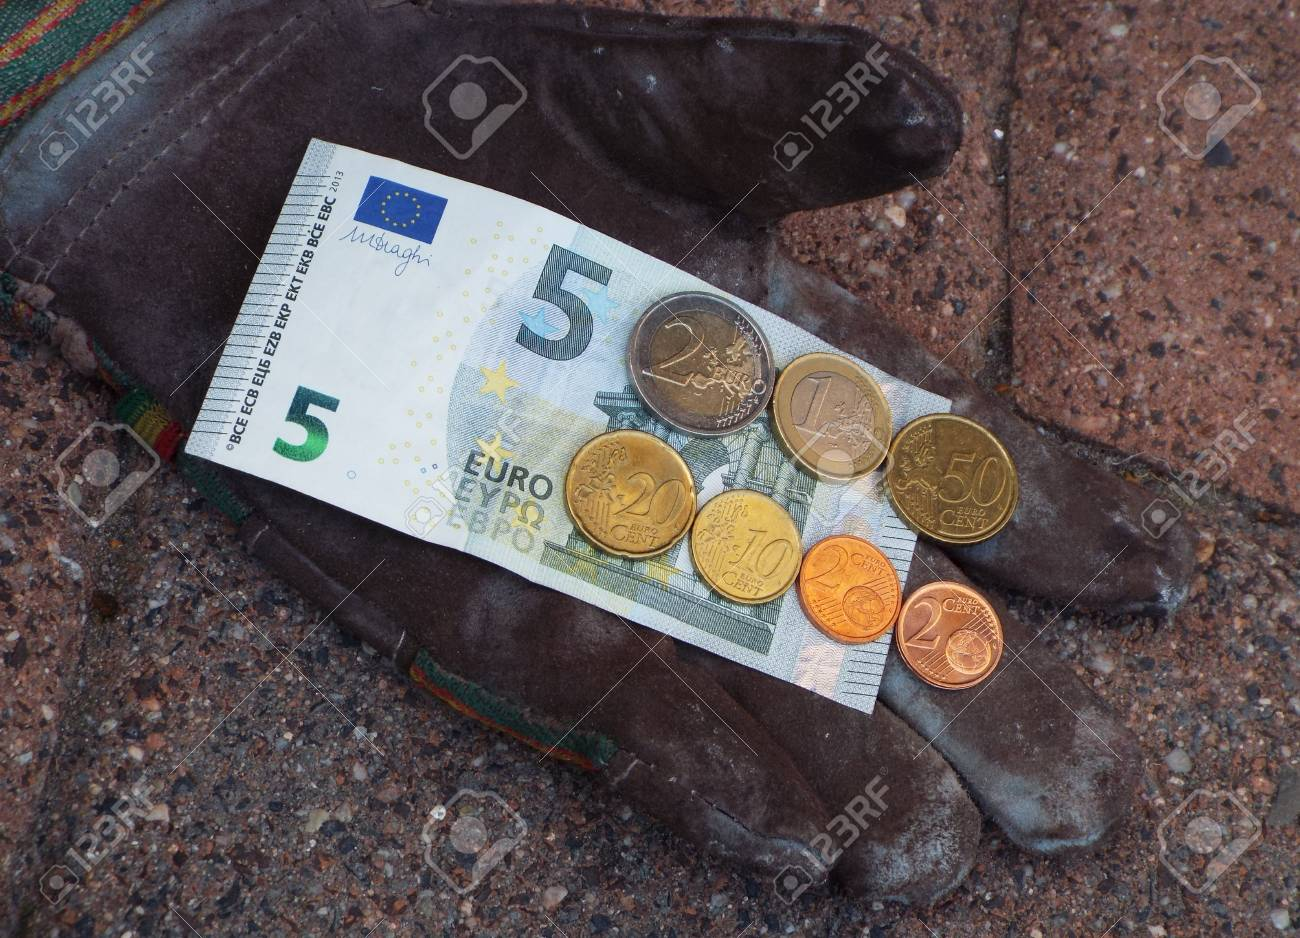 Germany minimum wage increase - On a work glove are ?,? 8.84, the German minimum wage from 2017th. - 60581391